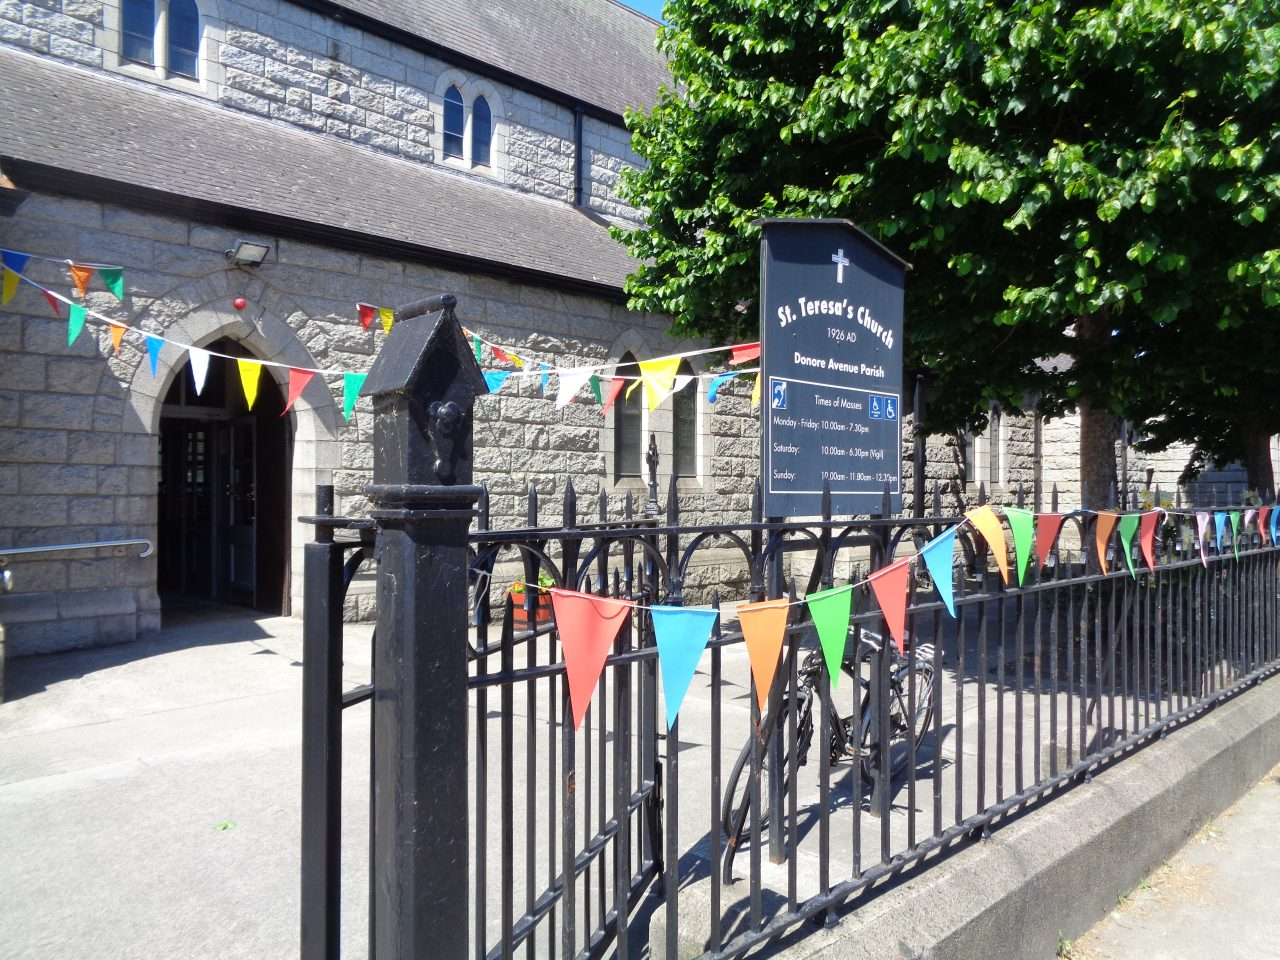 Donore Avenue Parish Church Decorated for Fr. Tom's First Mass